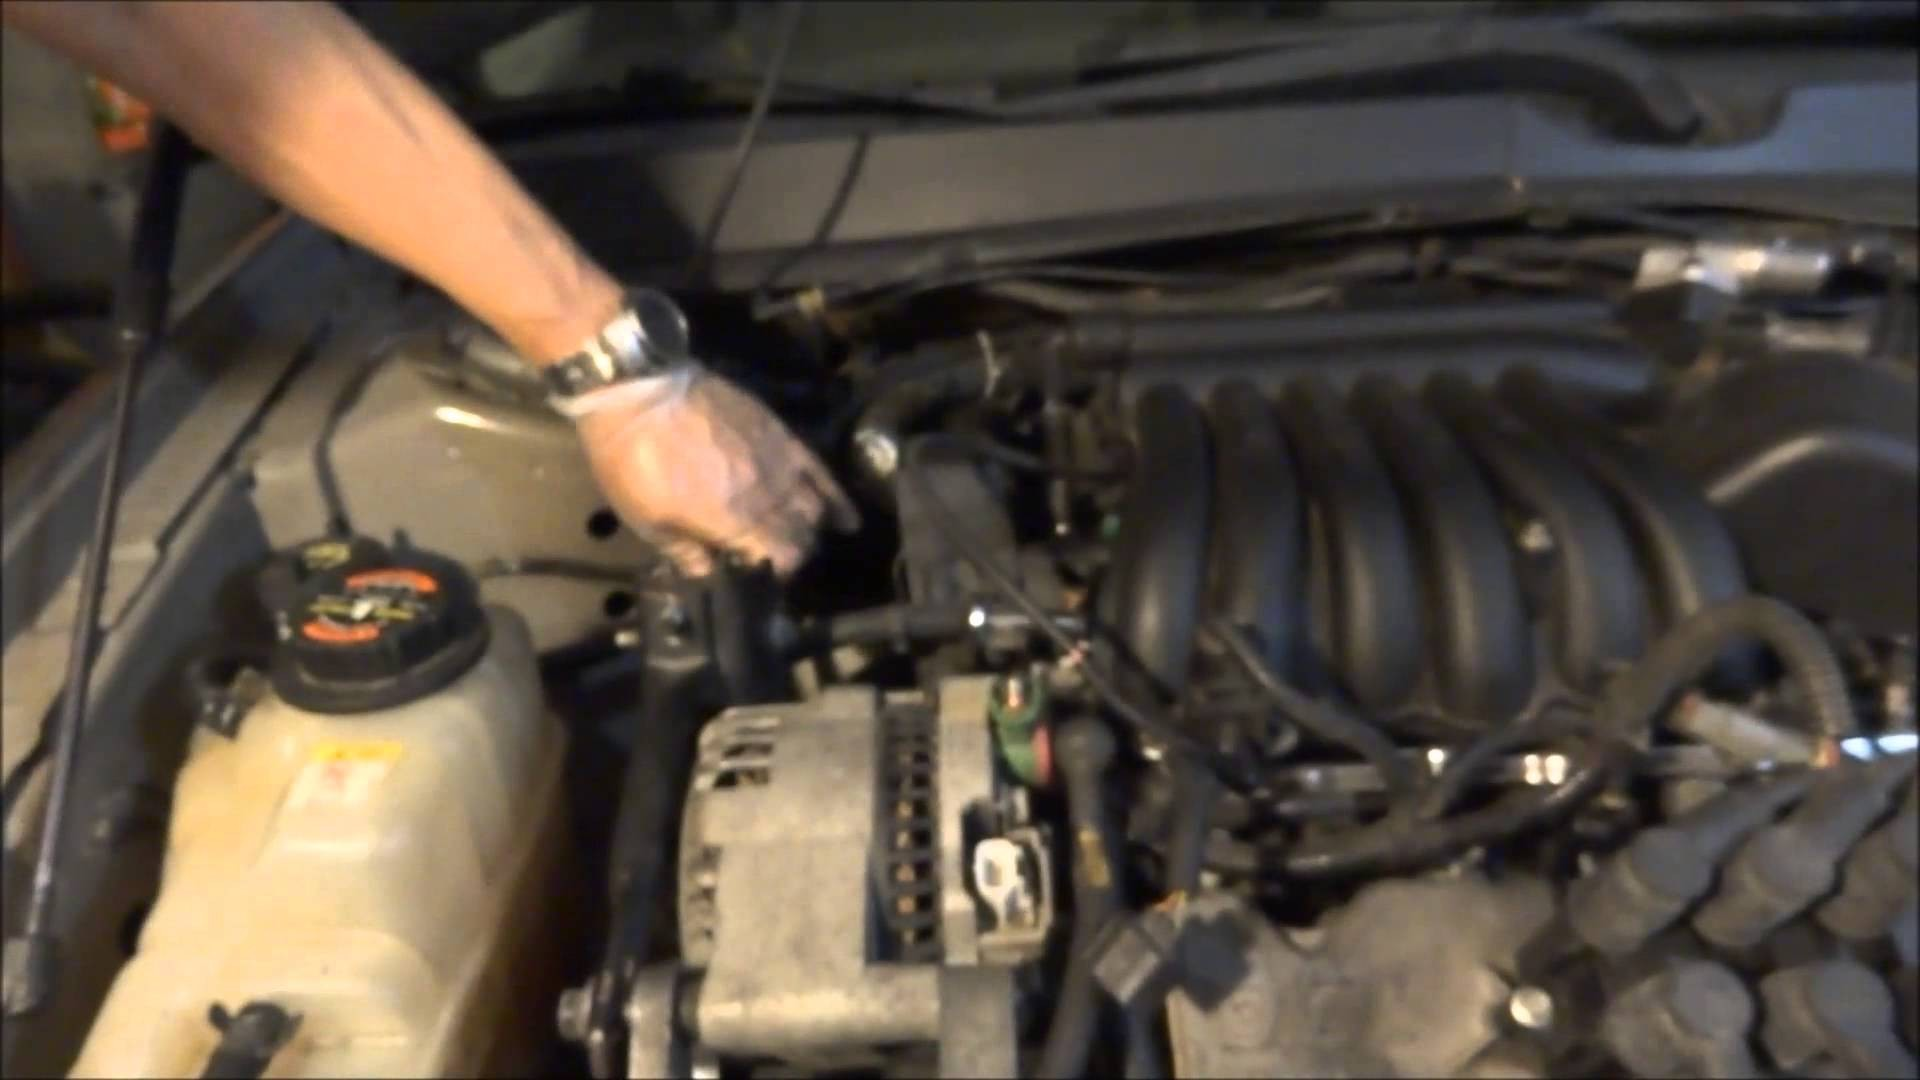 hight resolution of 2000 mercury sable engine diagram removing alternator from 2000 2007 ford taurus of 2000 mercury sable